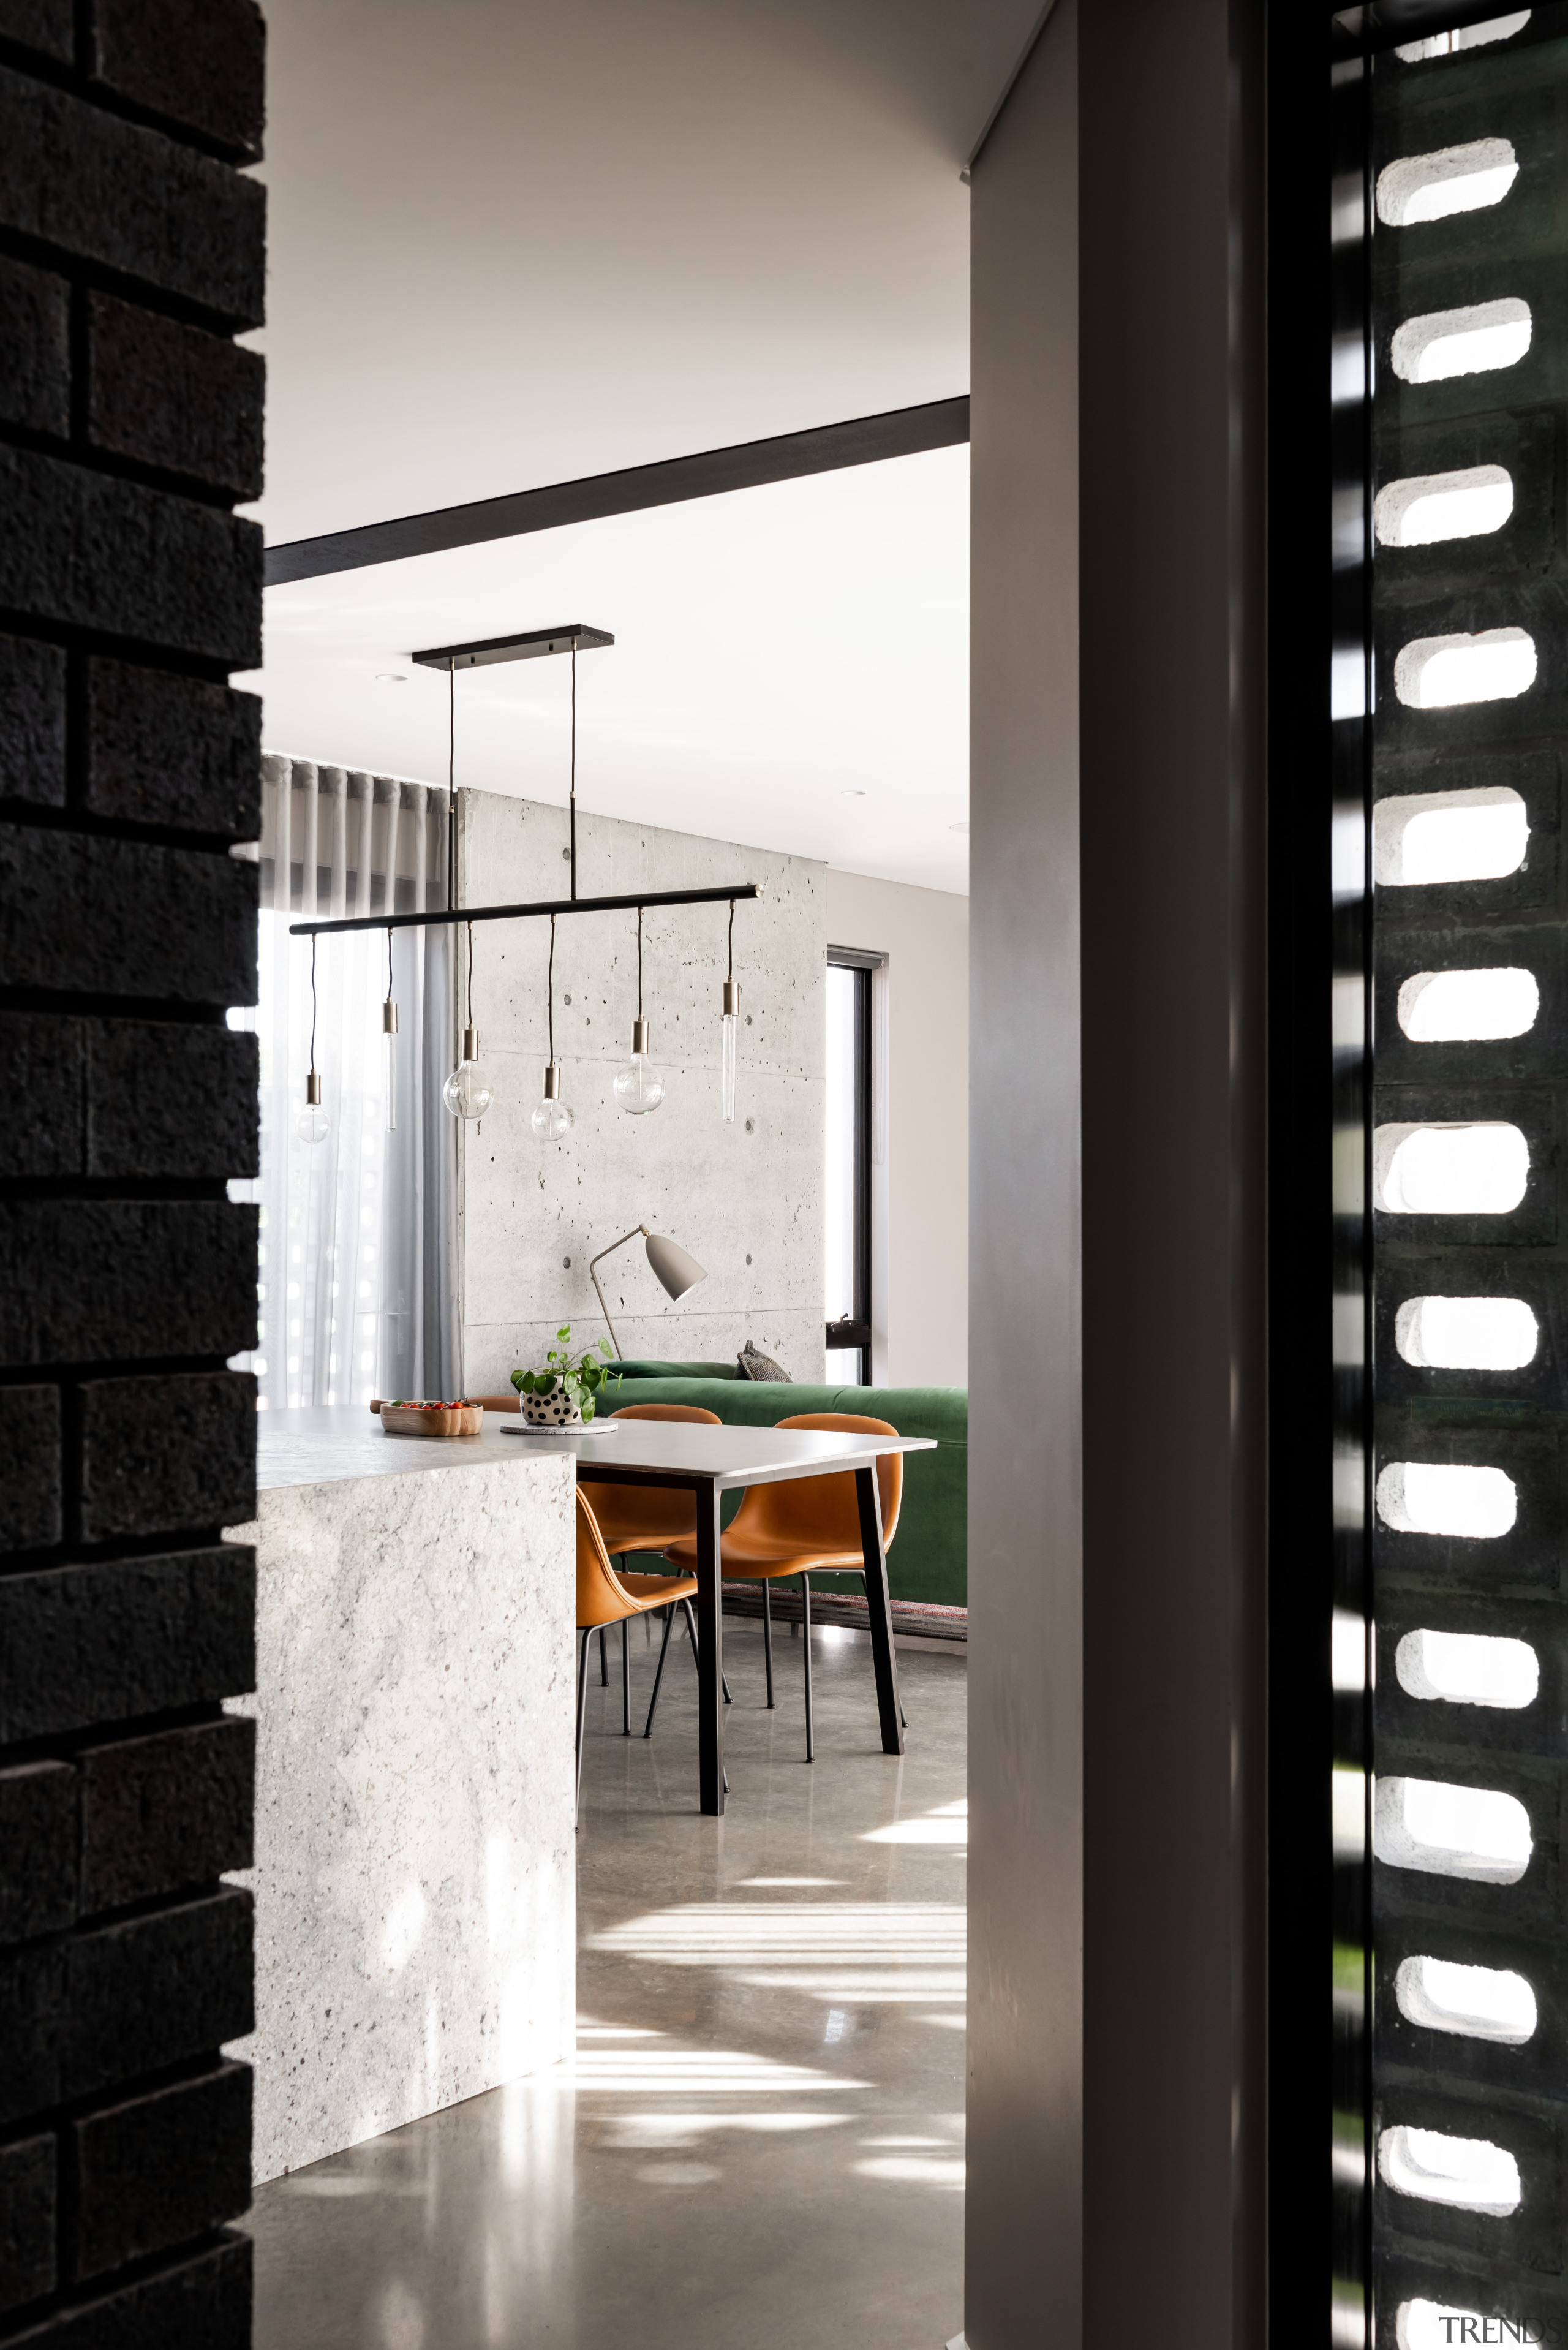 A feature wall in cast-in-situ poured concrete in architecture, floor, flooring, furniture, house, interior design, lighting, tile, wall, black, white, kitchen,  Dalecki Design